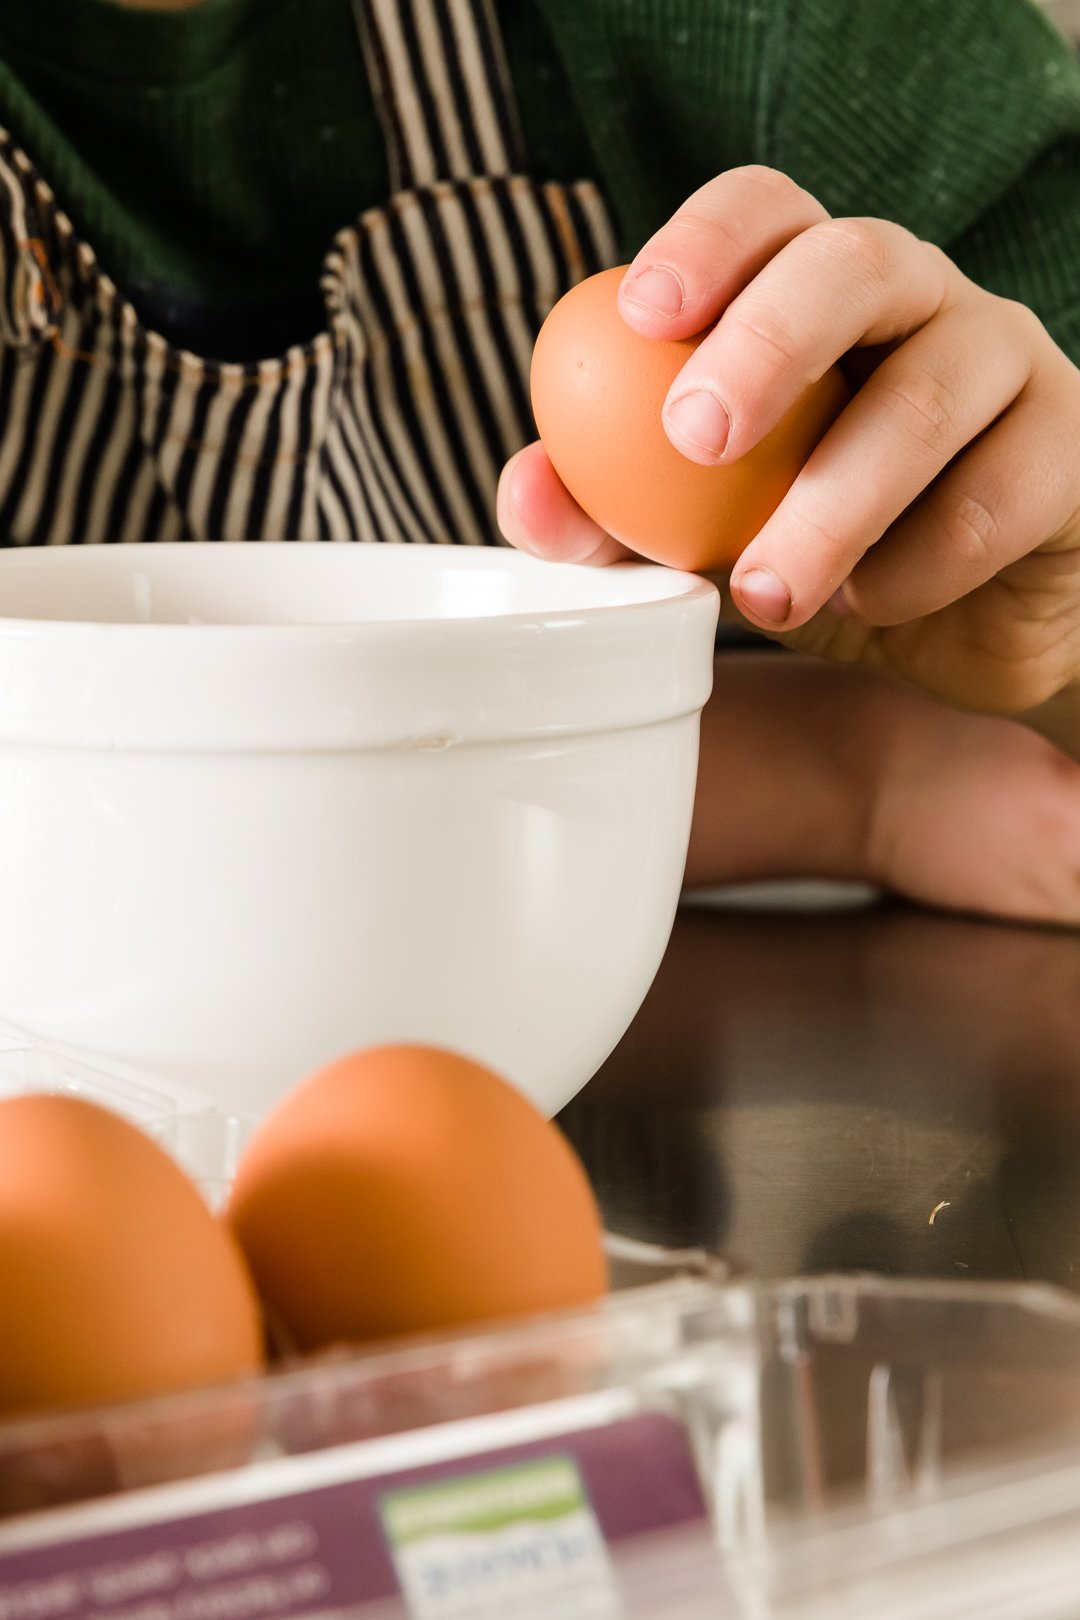 Myles cracking an egg on the edge of a bowl